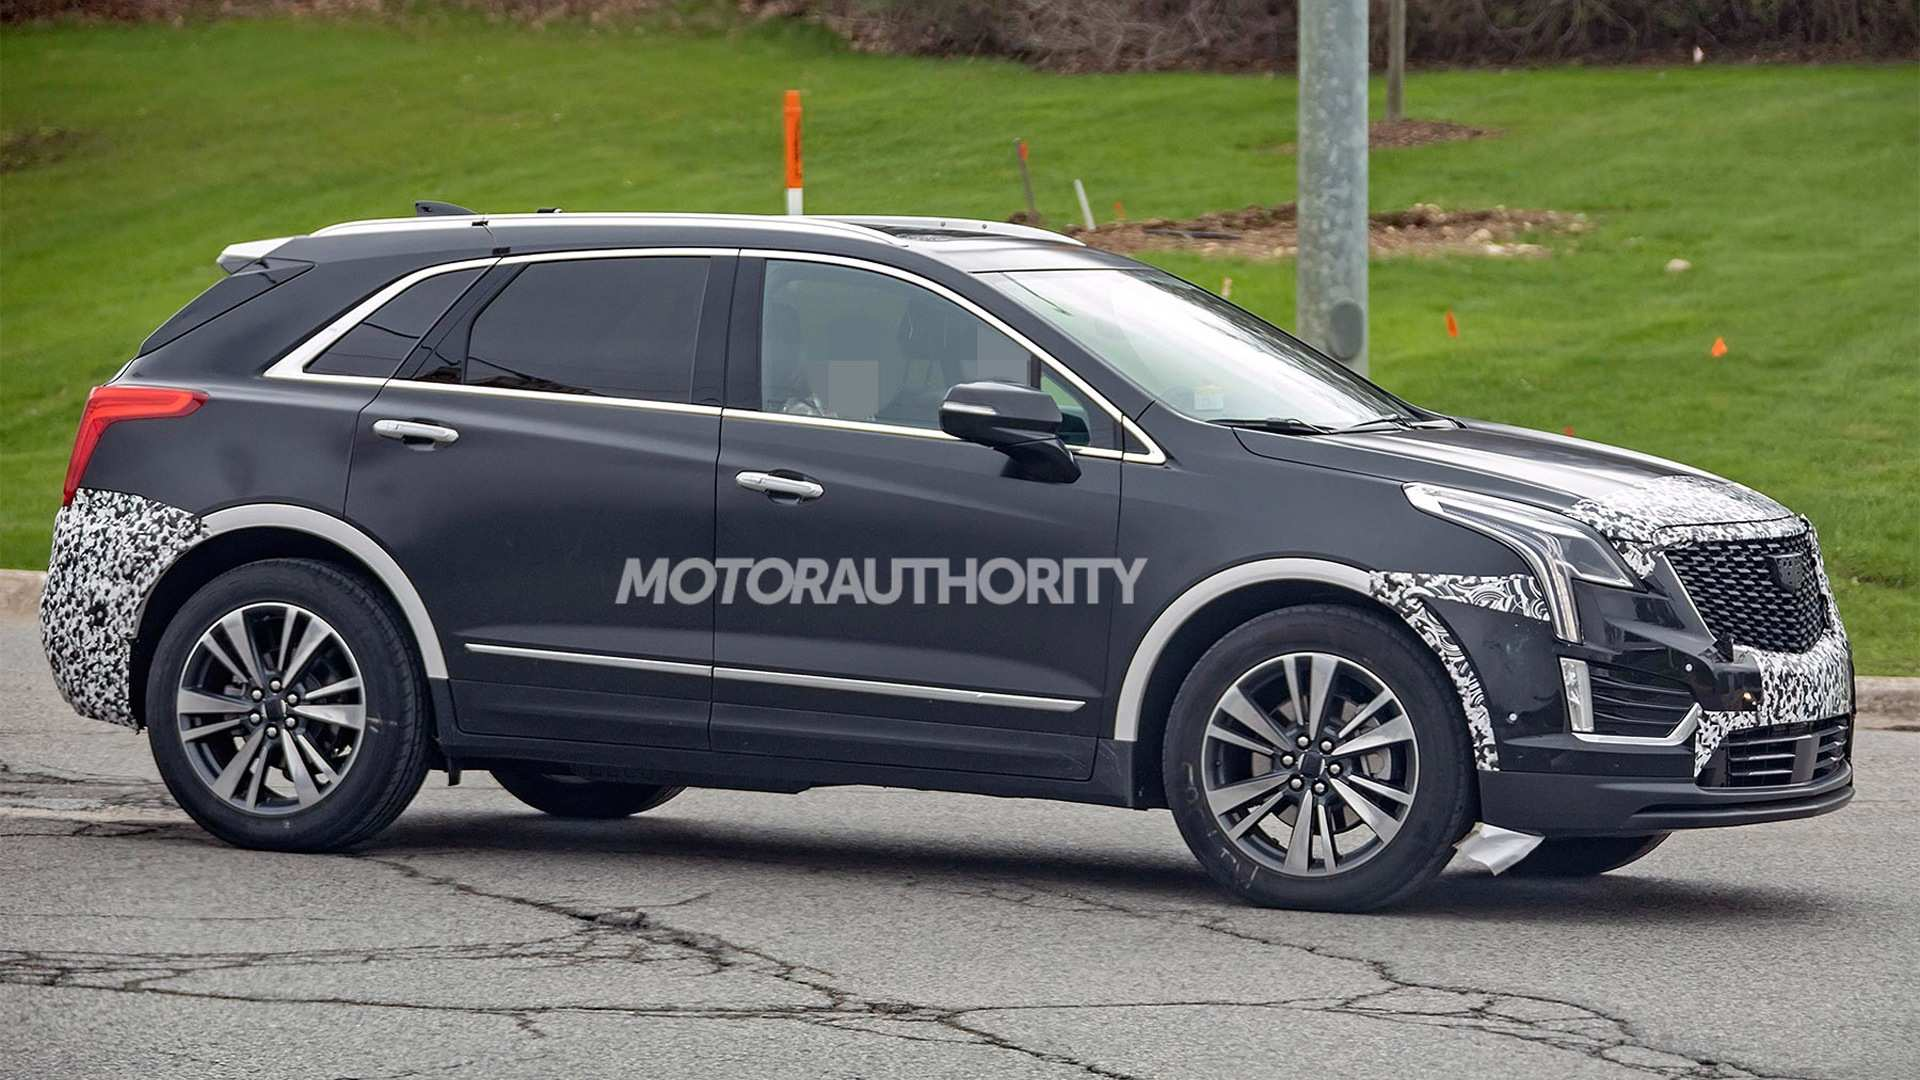 51 The Cadillac Hybrid Suv 2020 Research New